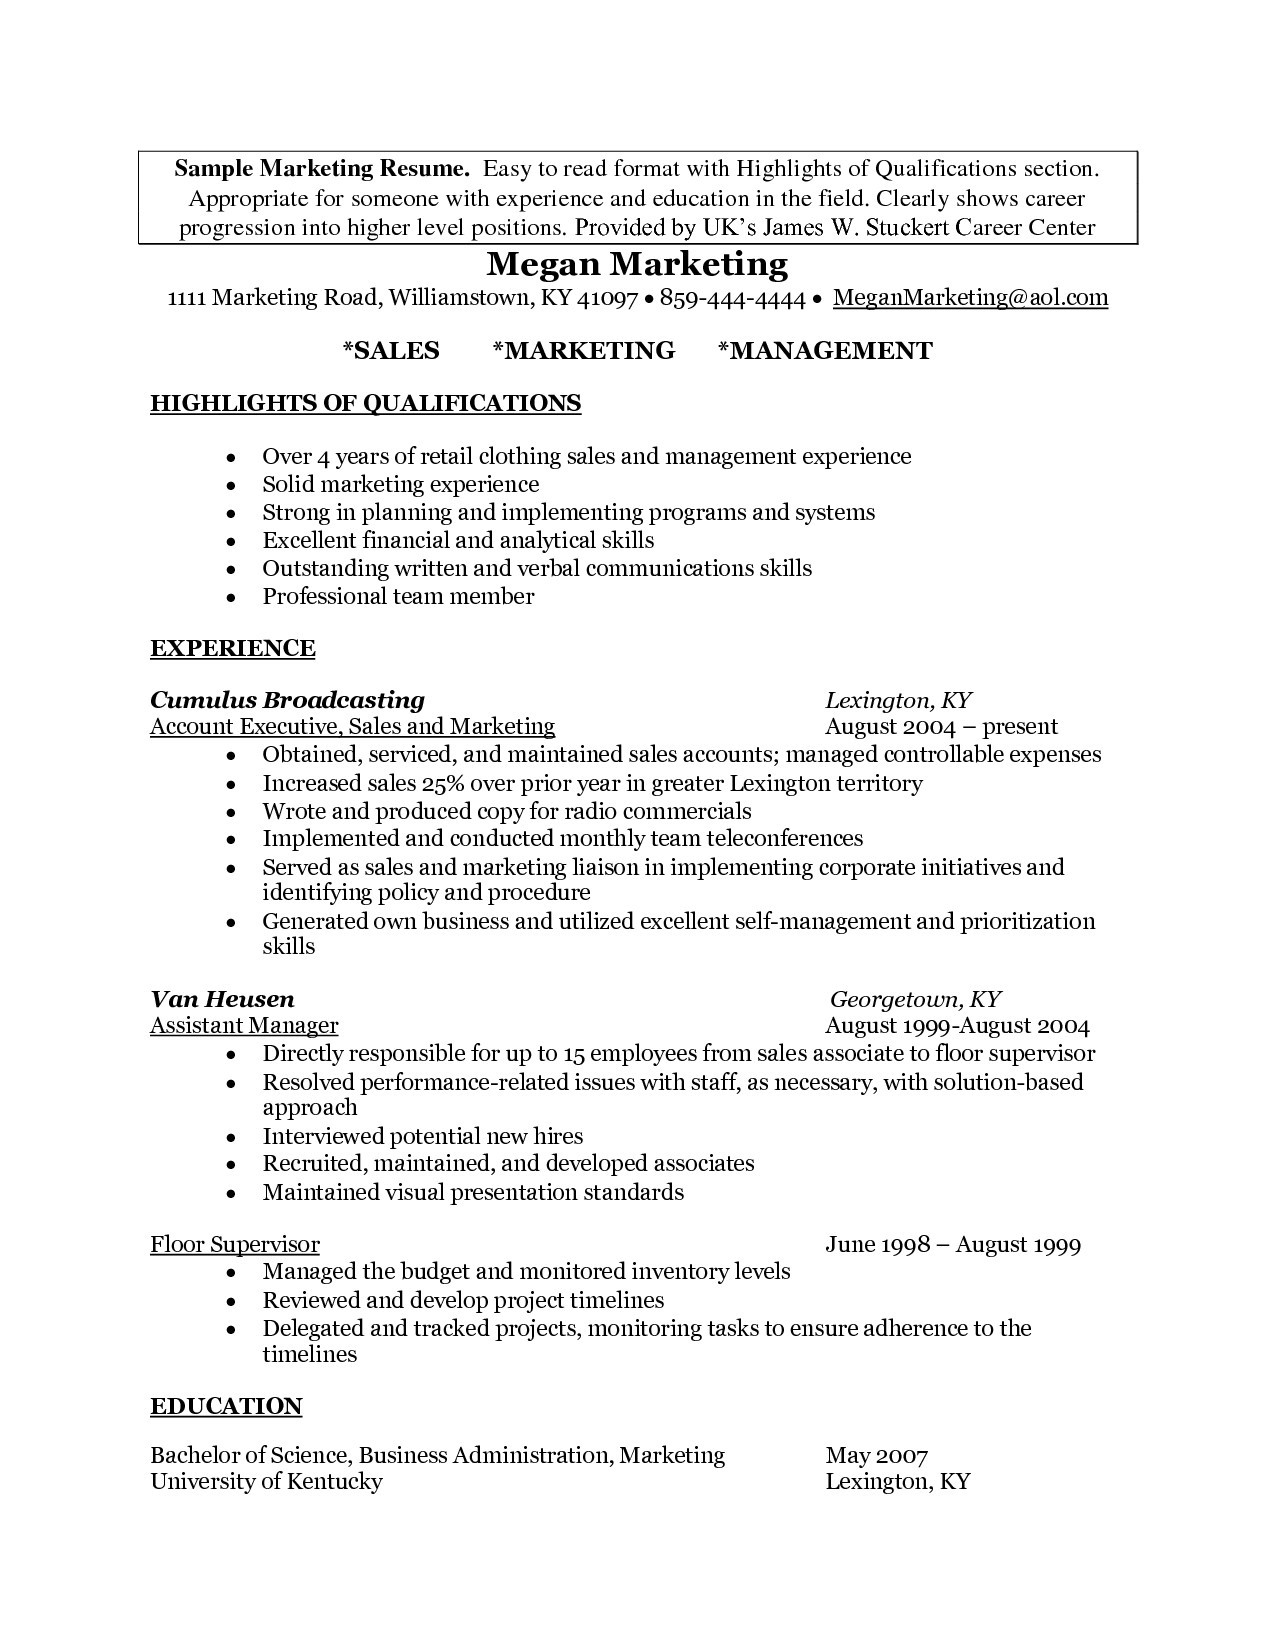 marketing manager resume template Collection-Marketing Manager Resume Fresh New Programmer Resume Lovely Resume Cover Letter formatted Resume 0d Marketing 4-k